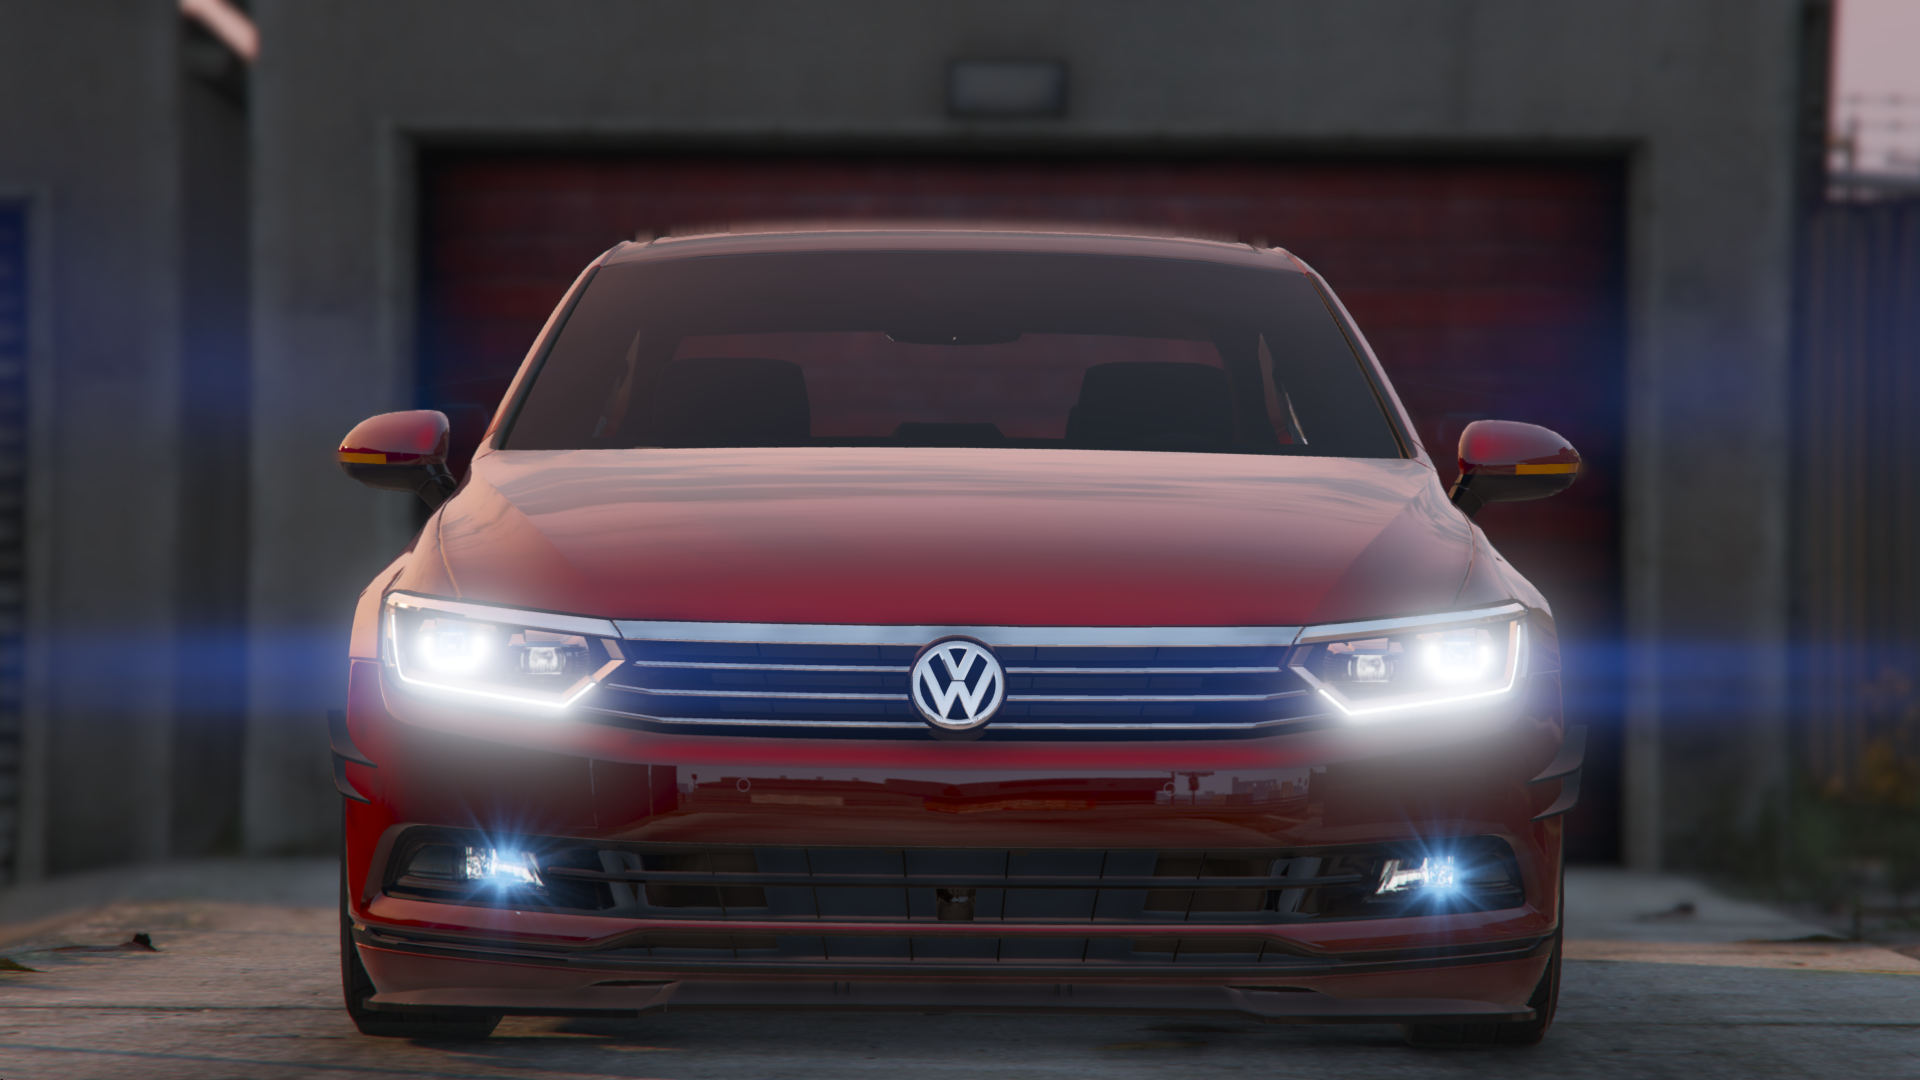 2016 volkswagen passat highline stanced b8 add on replace gta5. Black Bedroom Furniture Sets. Home Design Ideas